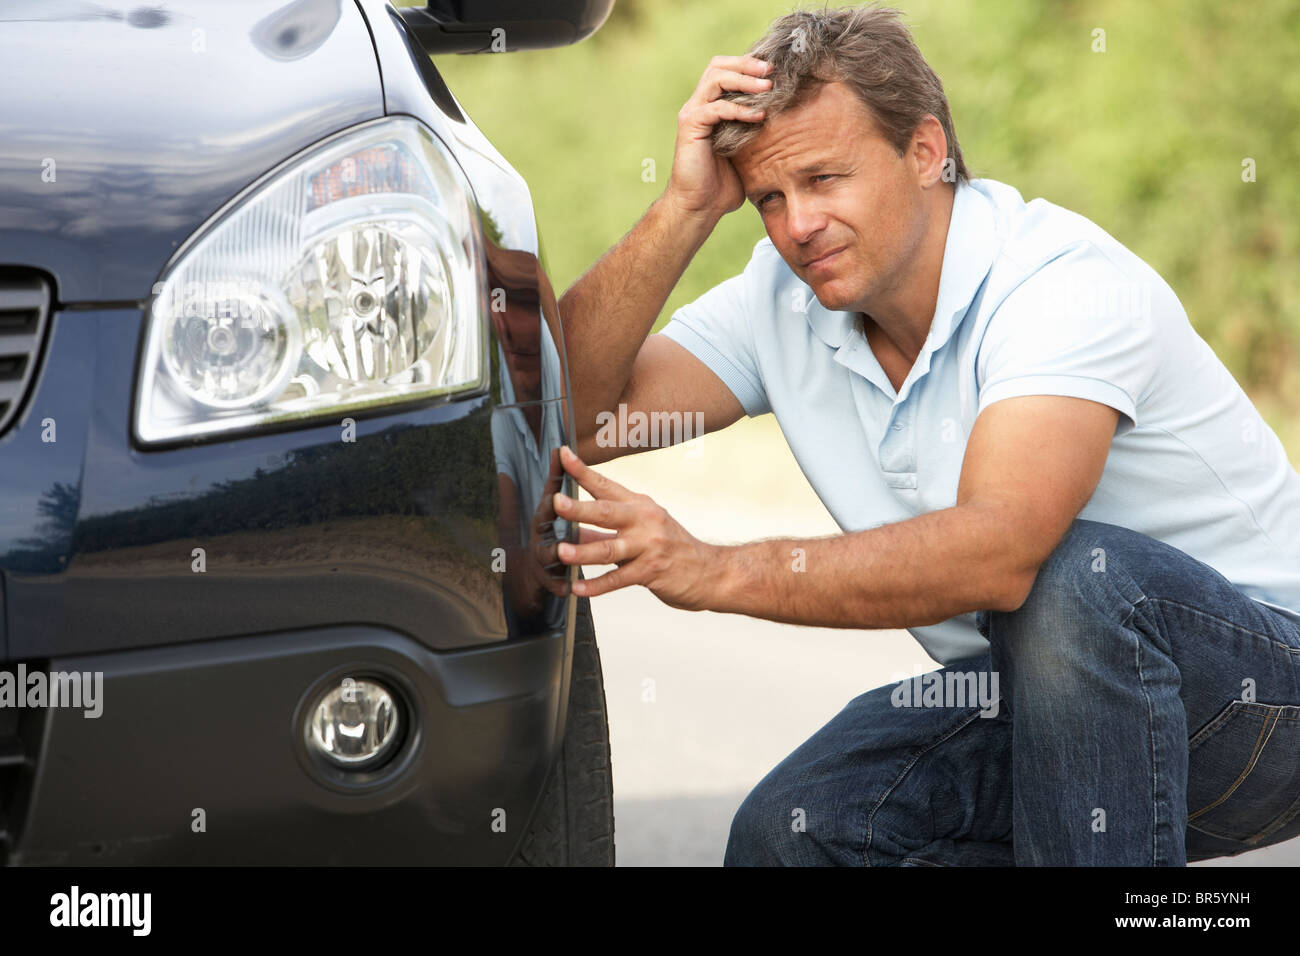 Driver Broken Down On Country Road - Stock Image